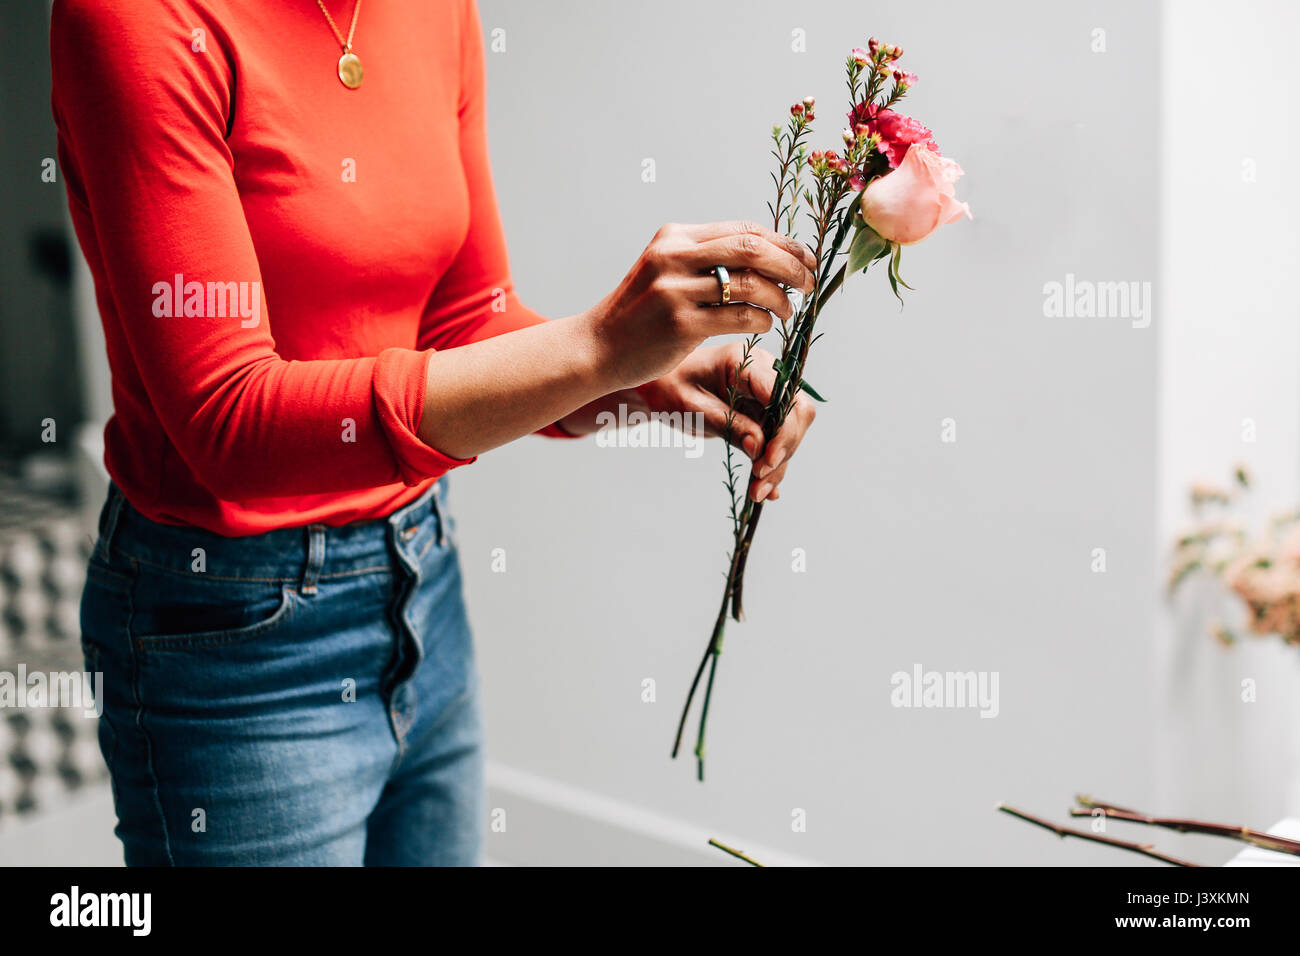 Mid section of female florist holding cut flowers in florists workshop - Stock Image